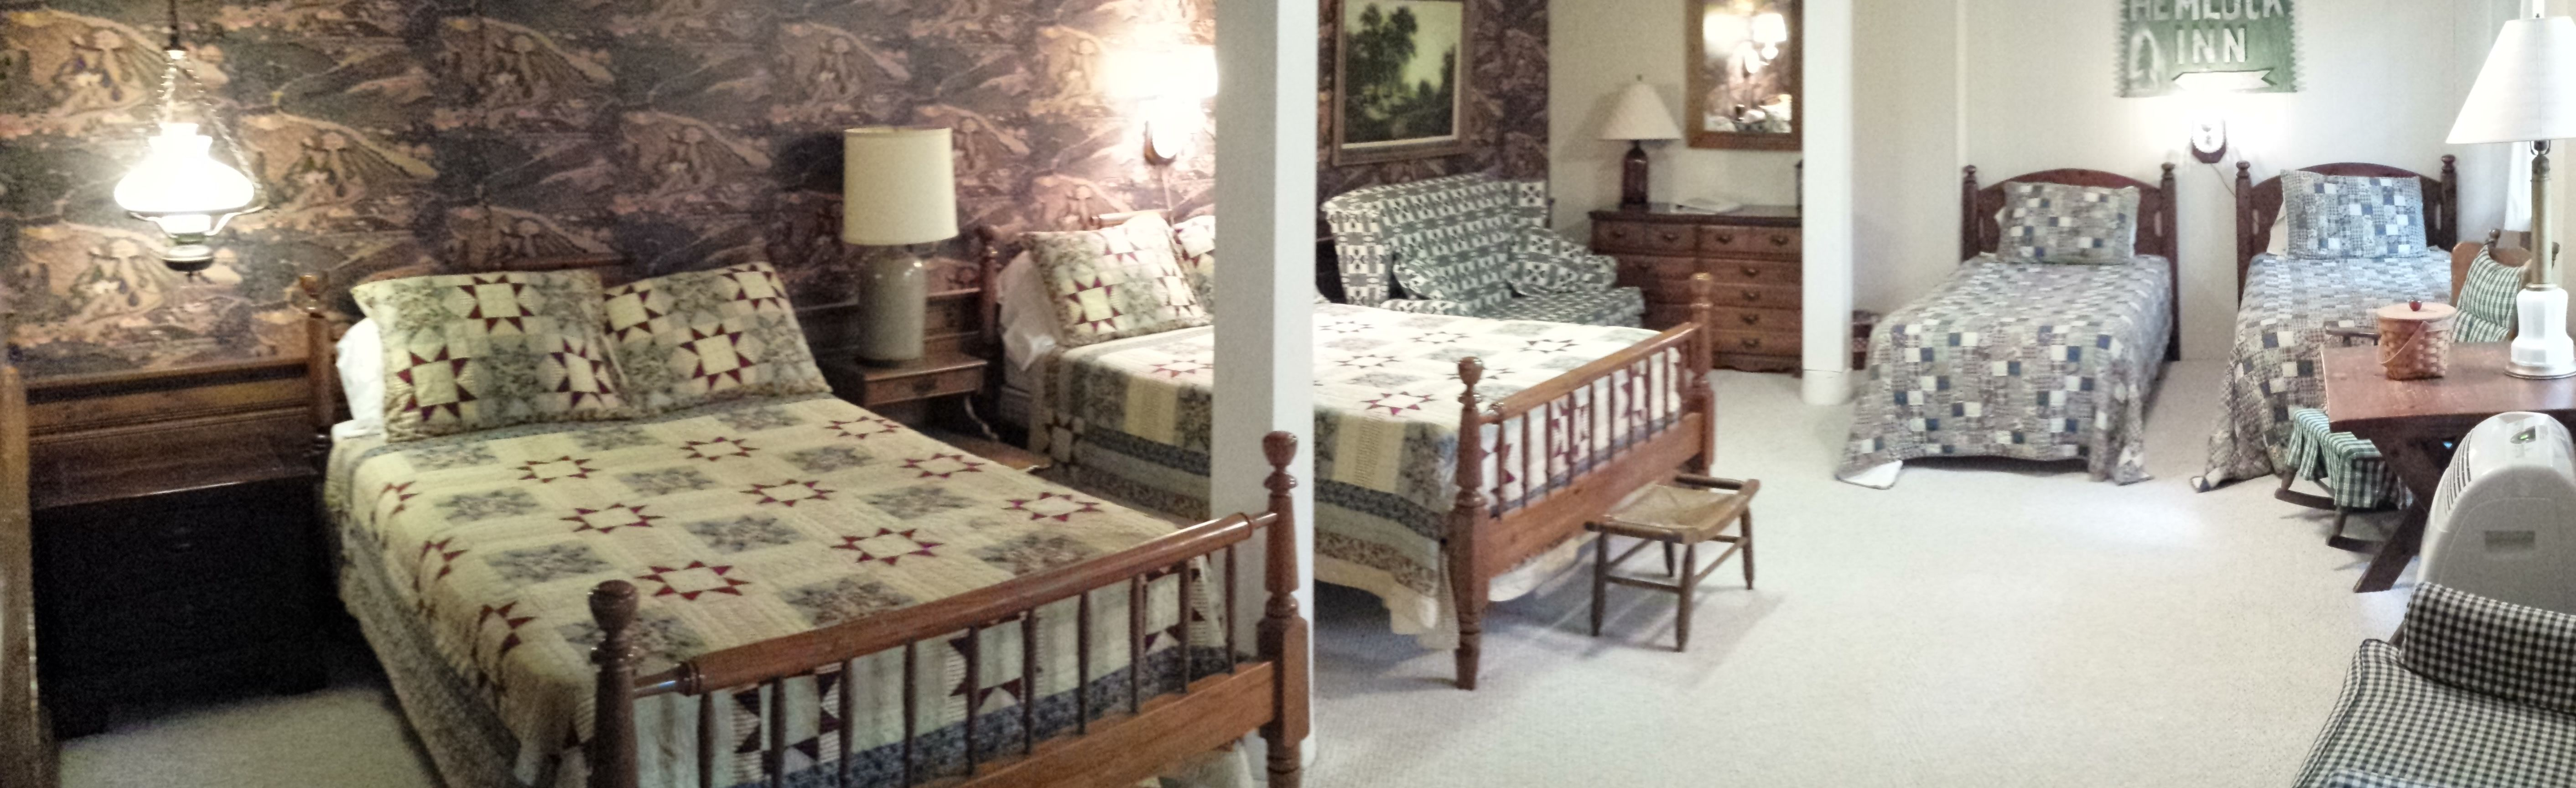 Hemlock Inn Romantic bed and breakfast, Bed and